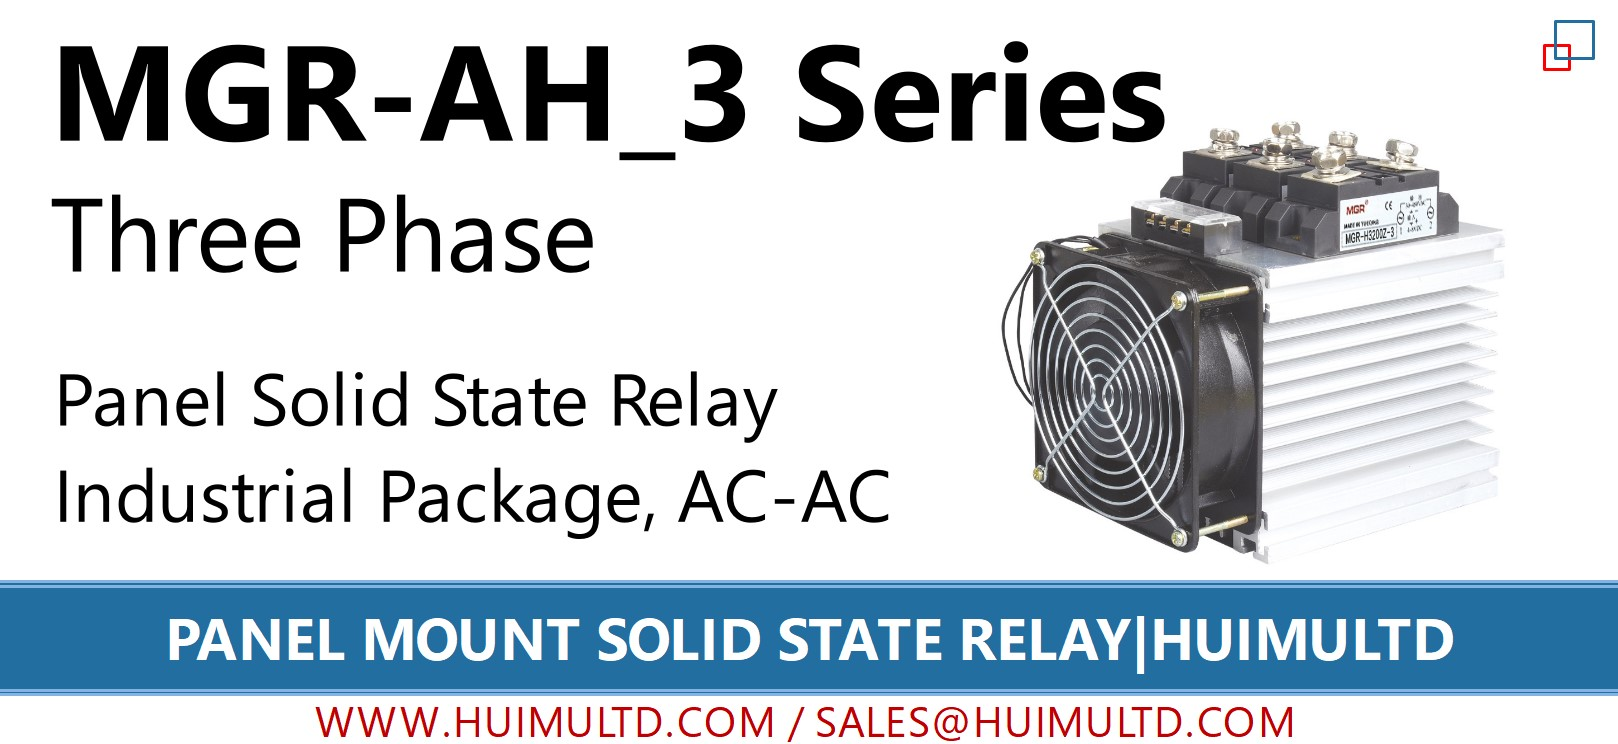 MGR-AH_3 Series Panel Mount Solid State Relay